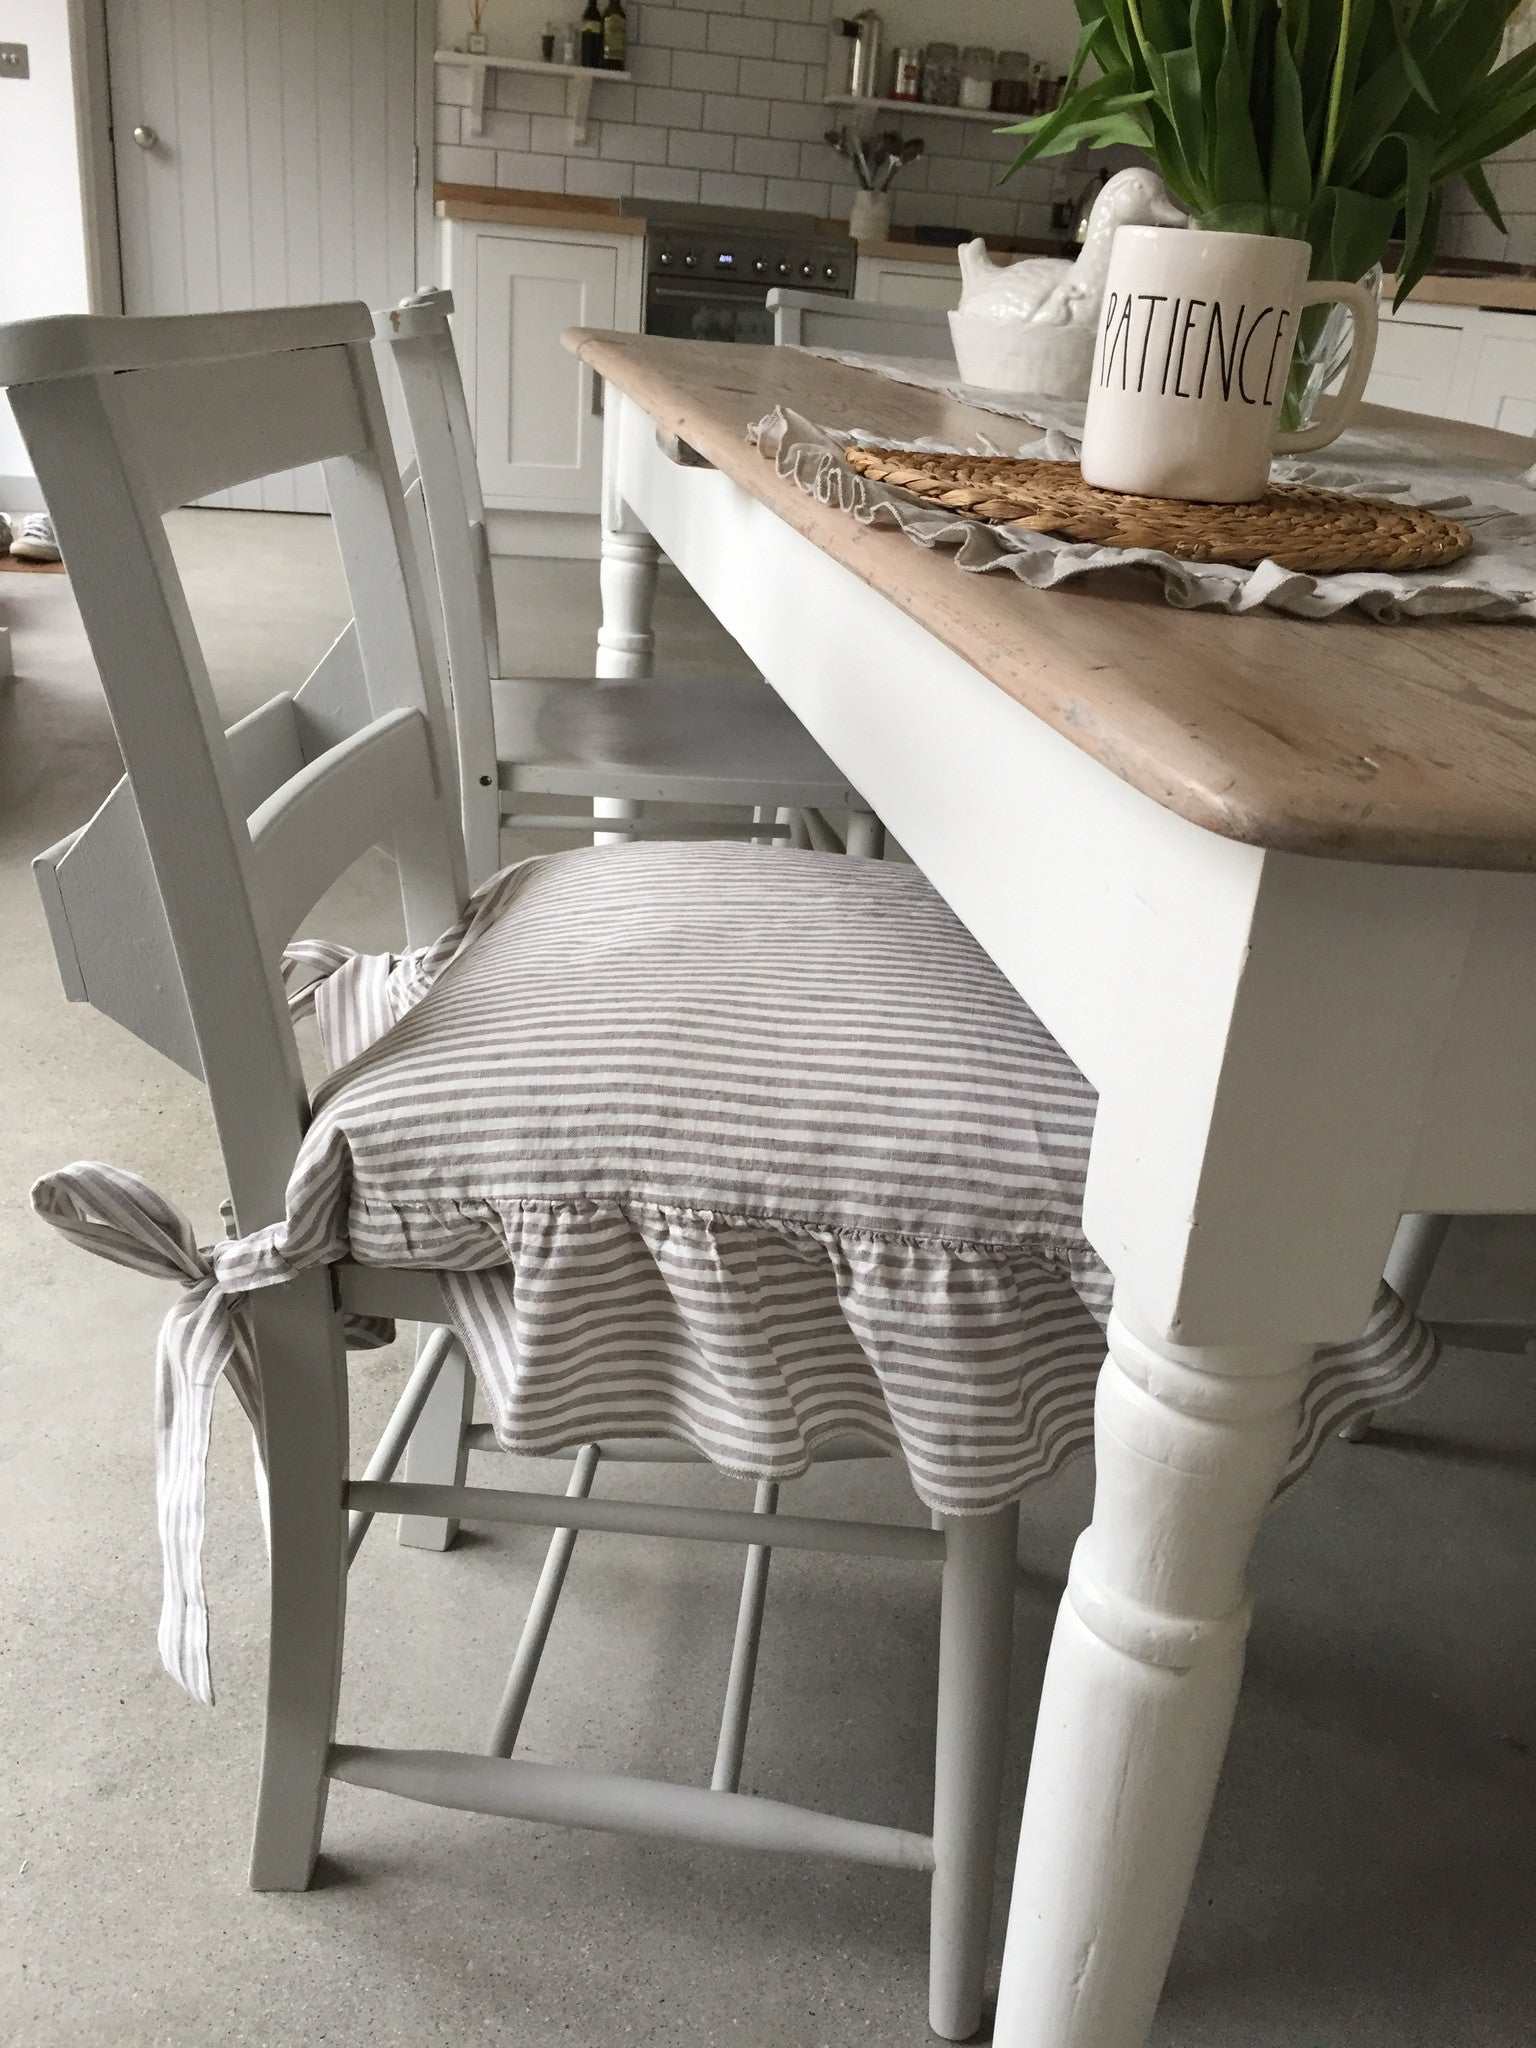 Linen Seat Chair Cover Shabby Chic